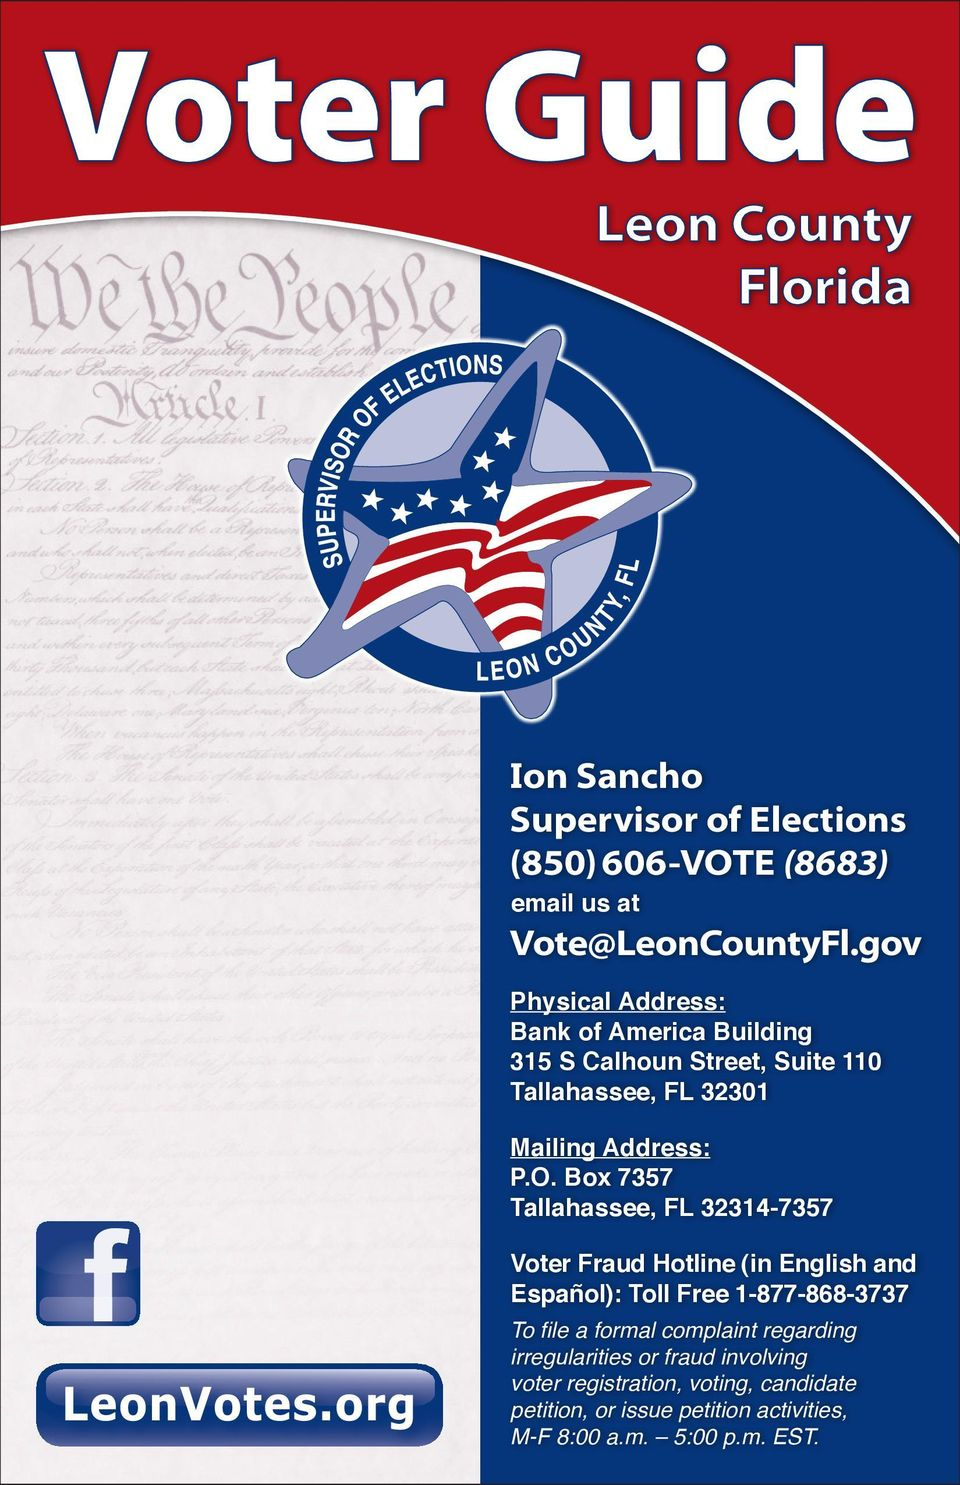 Box 7357 Tallahassee, FL 32314-7357 Voter Fraud Hotline (in English and Español): Toll Free 1-877-868-3737 To file a formal